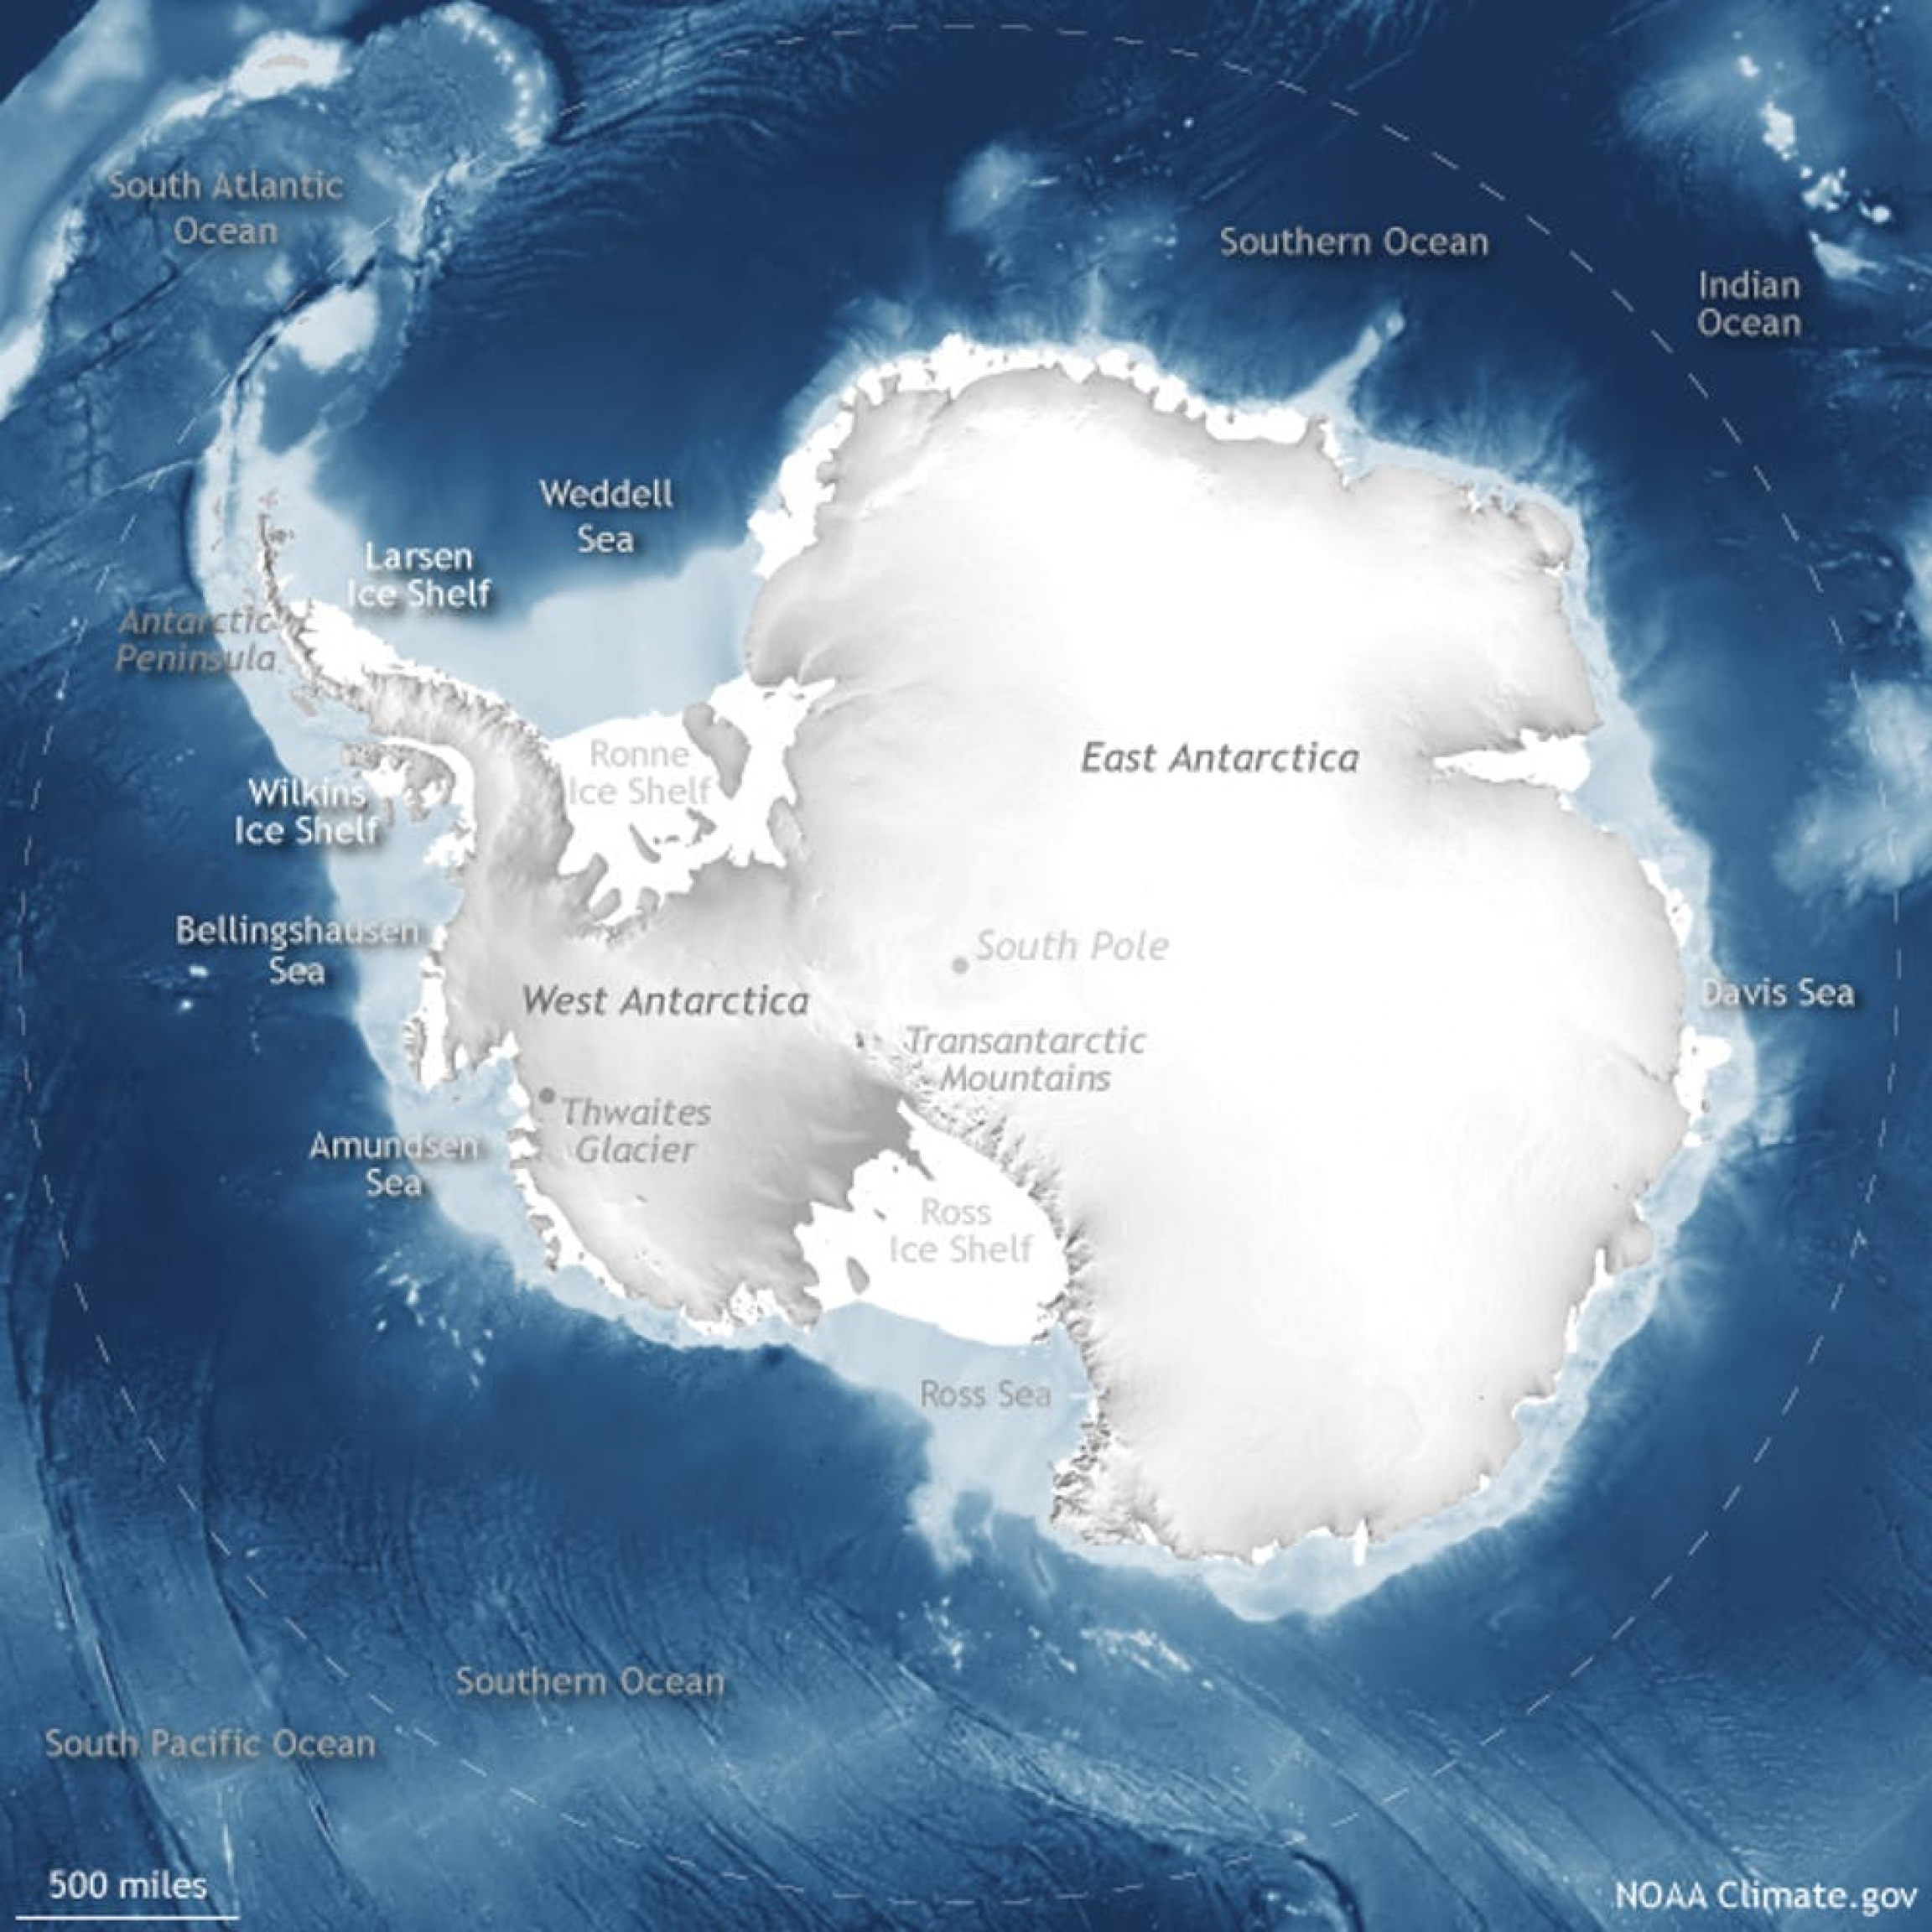 Antarctica is mostly covered by ice sheets on land and fringed by floating ice shelves.